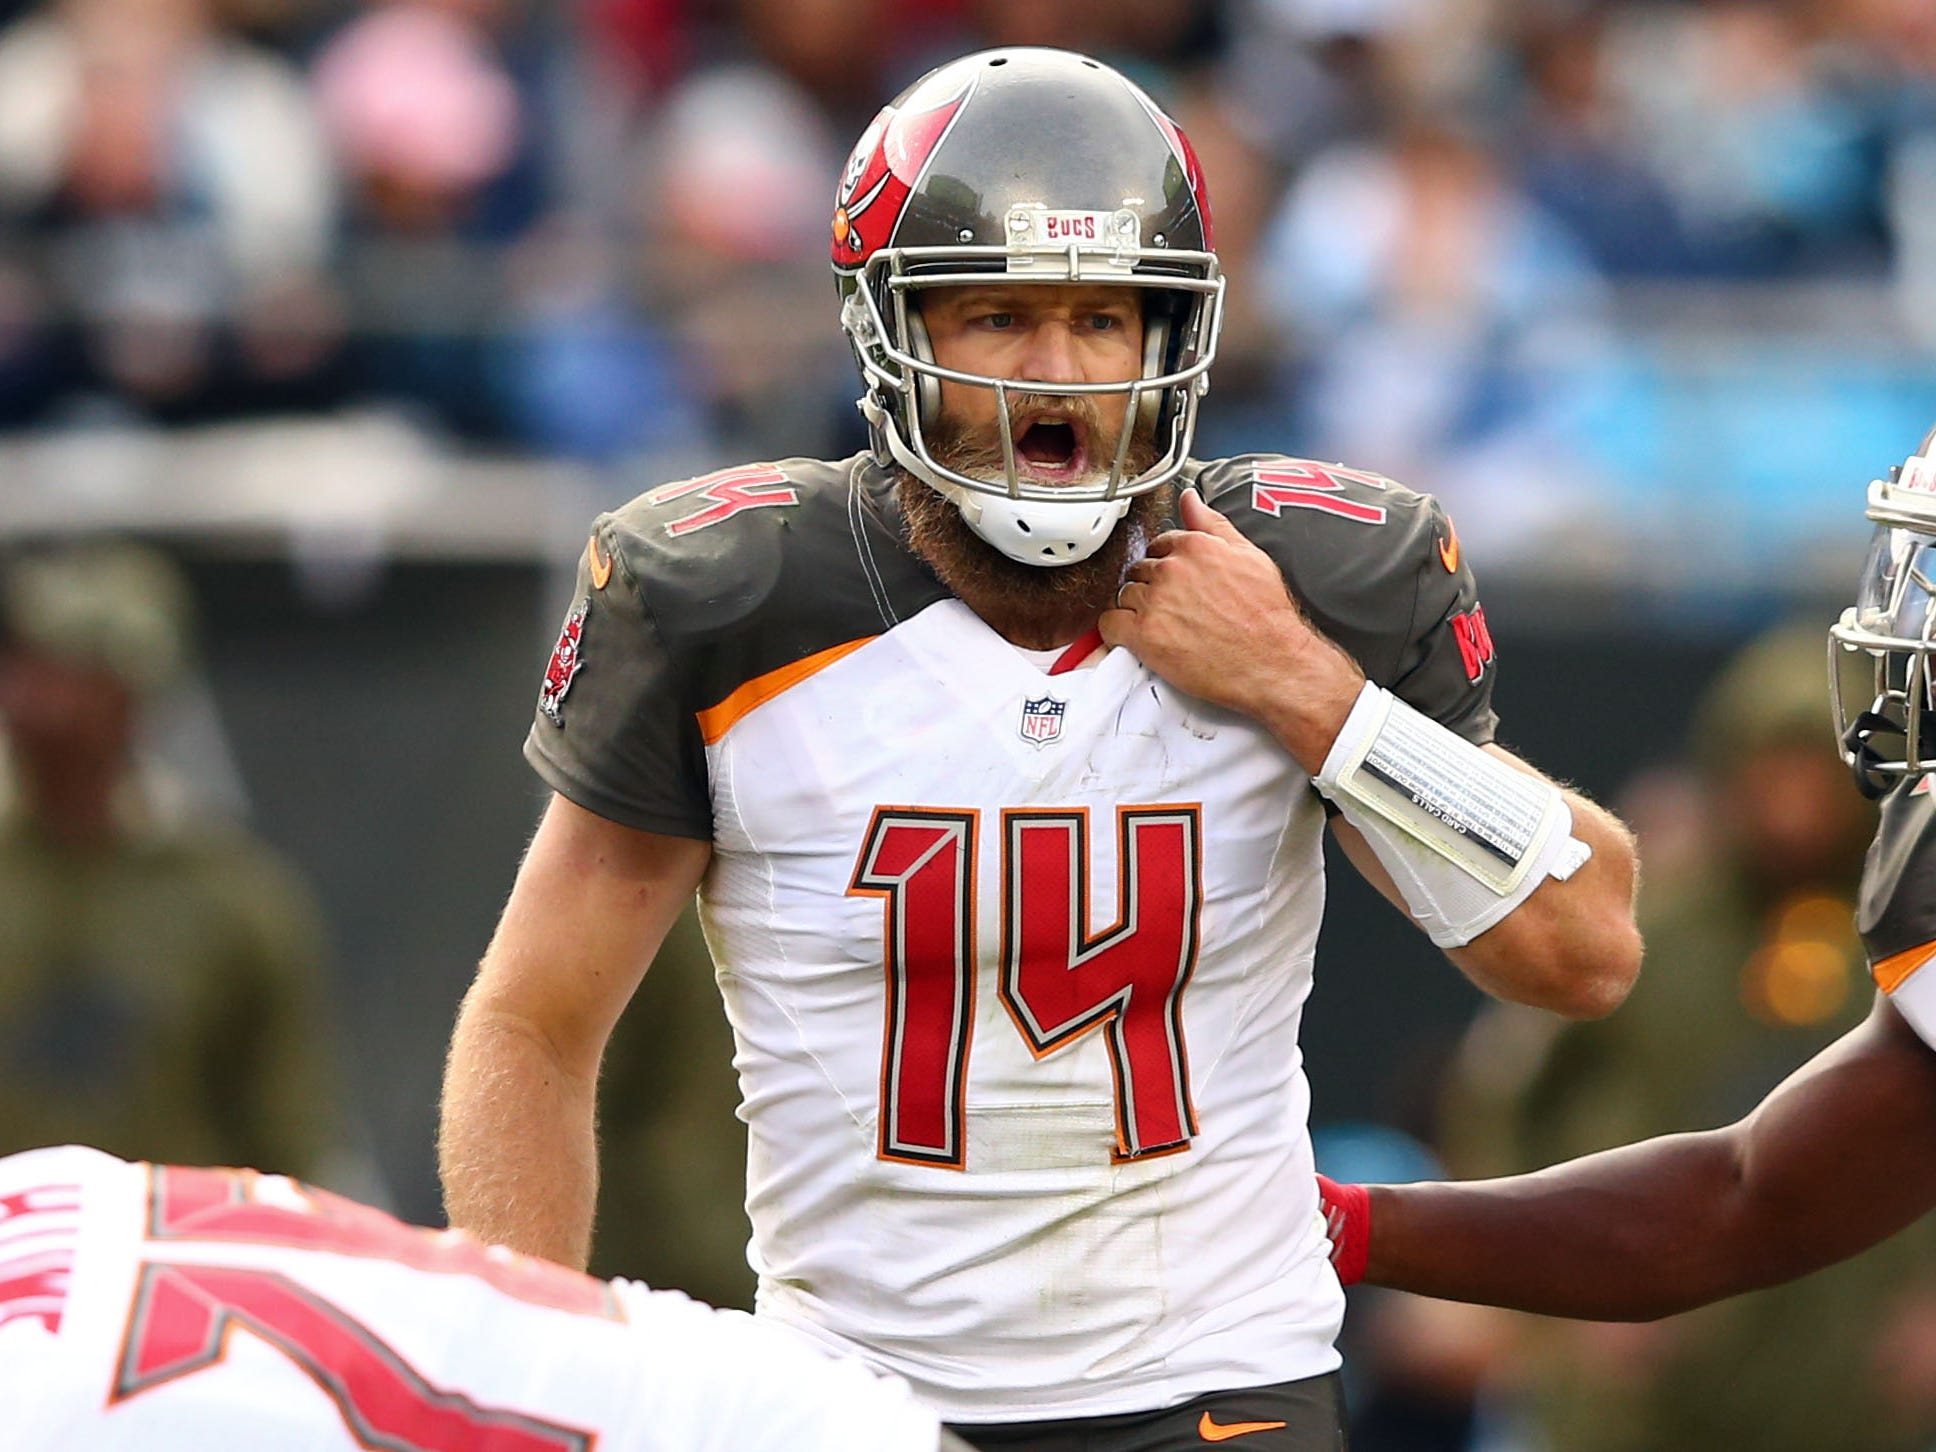 23. Buccaneers (3-5) | Last game: Lost to the Panthers, 42-28 | Previous ranking: 21